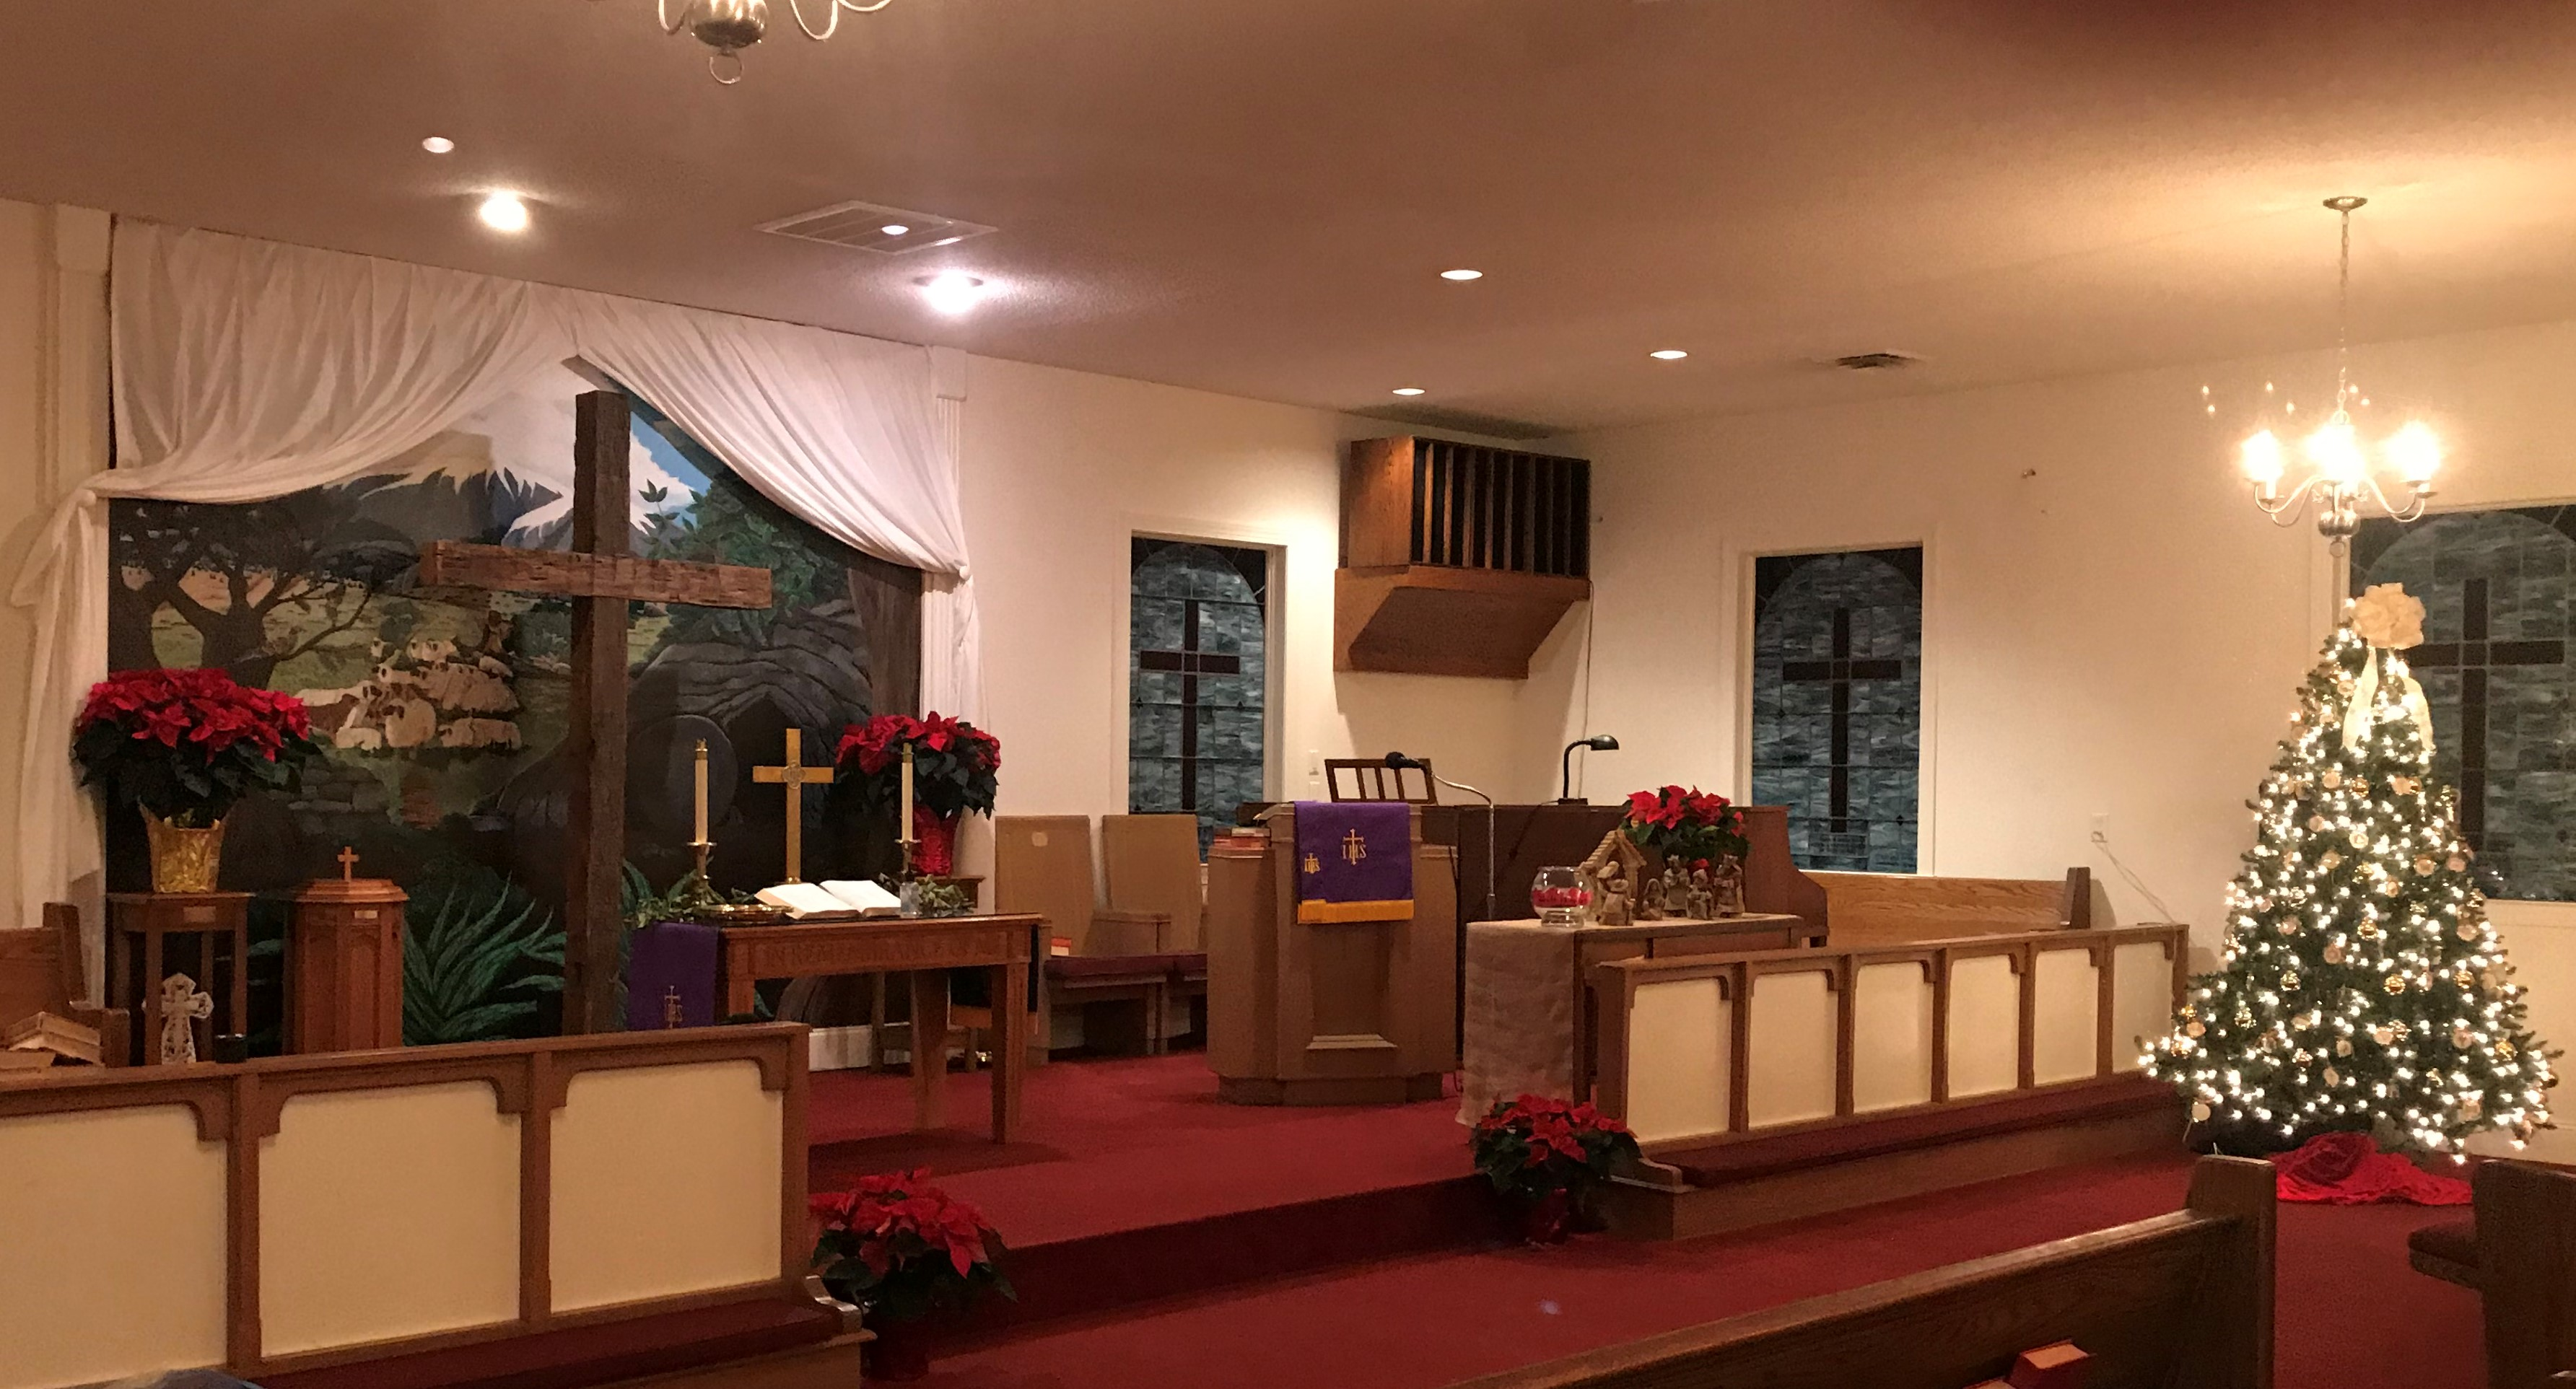 The sanctuary at Sandy Ridge United Methodist Church in High Point, North Carolina, is decorated for Advent.